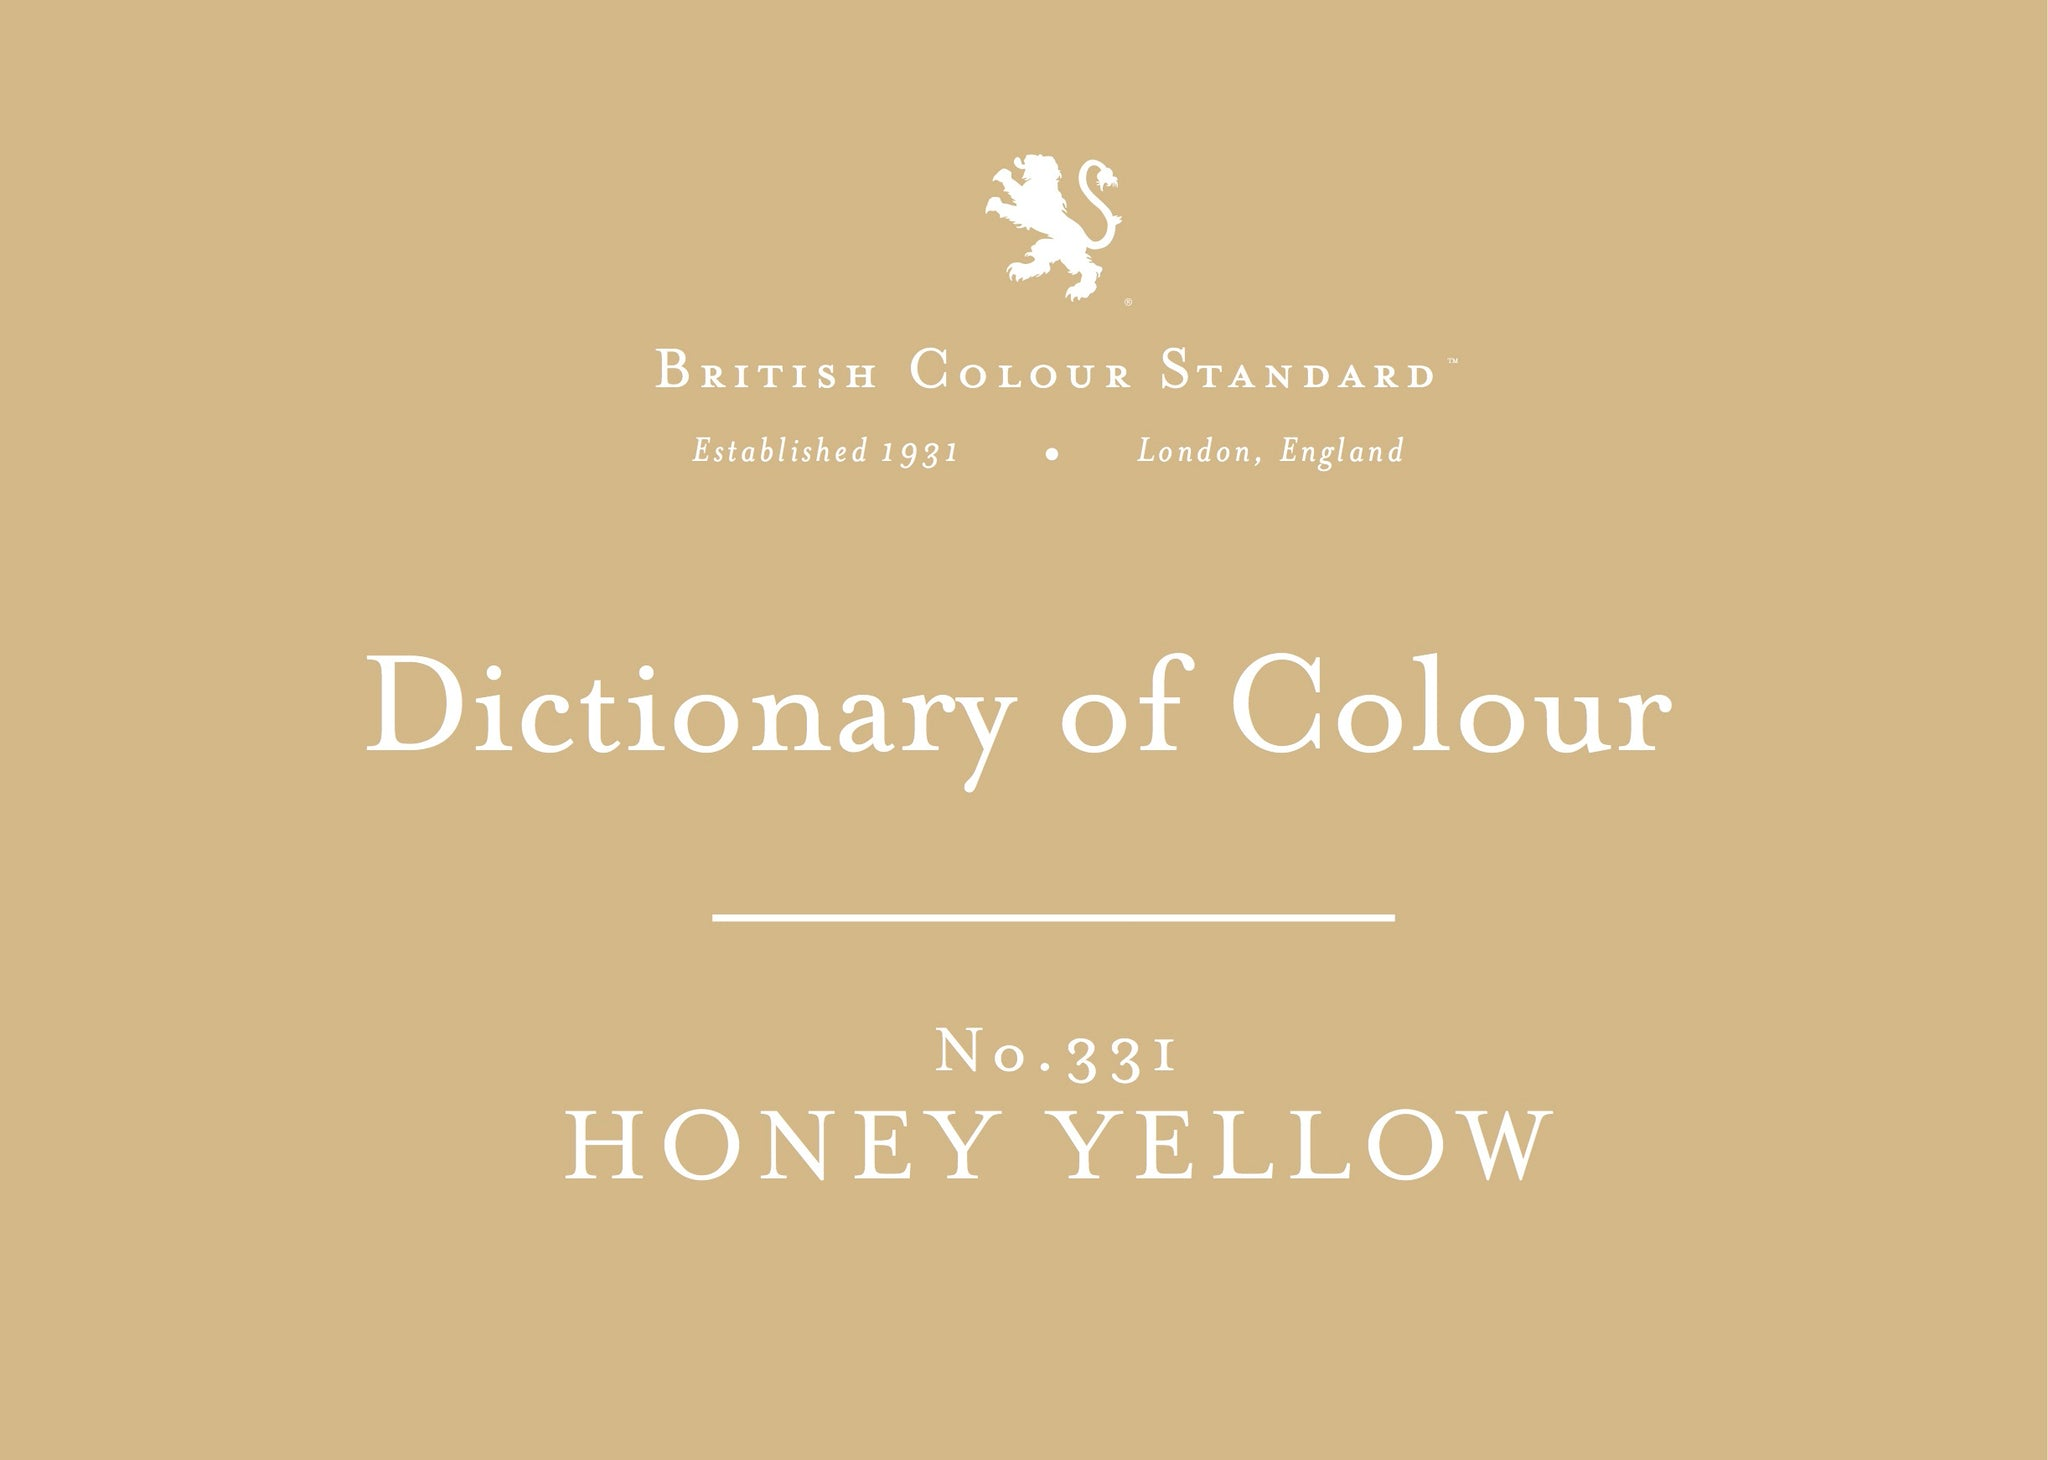 BRITISH COLOUR STANDARD - Honey yellow No. 331